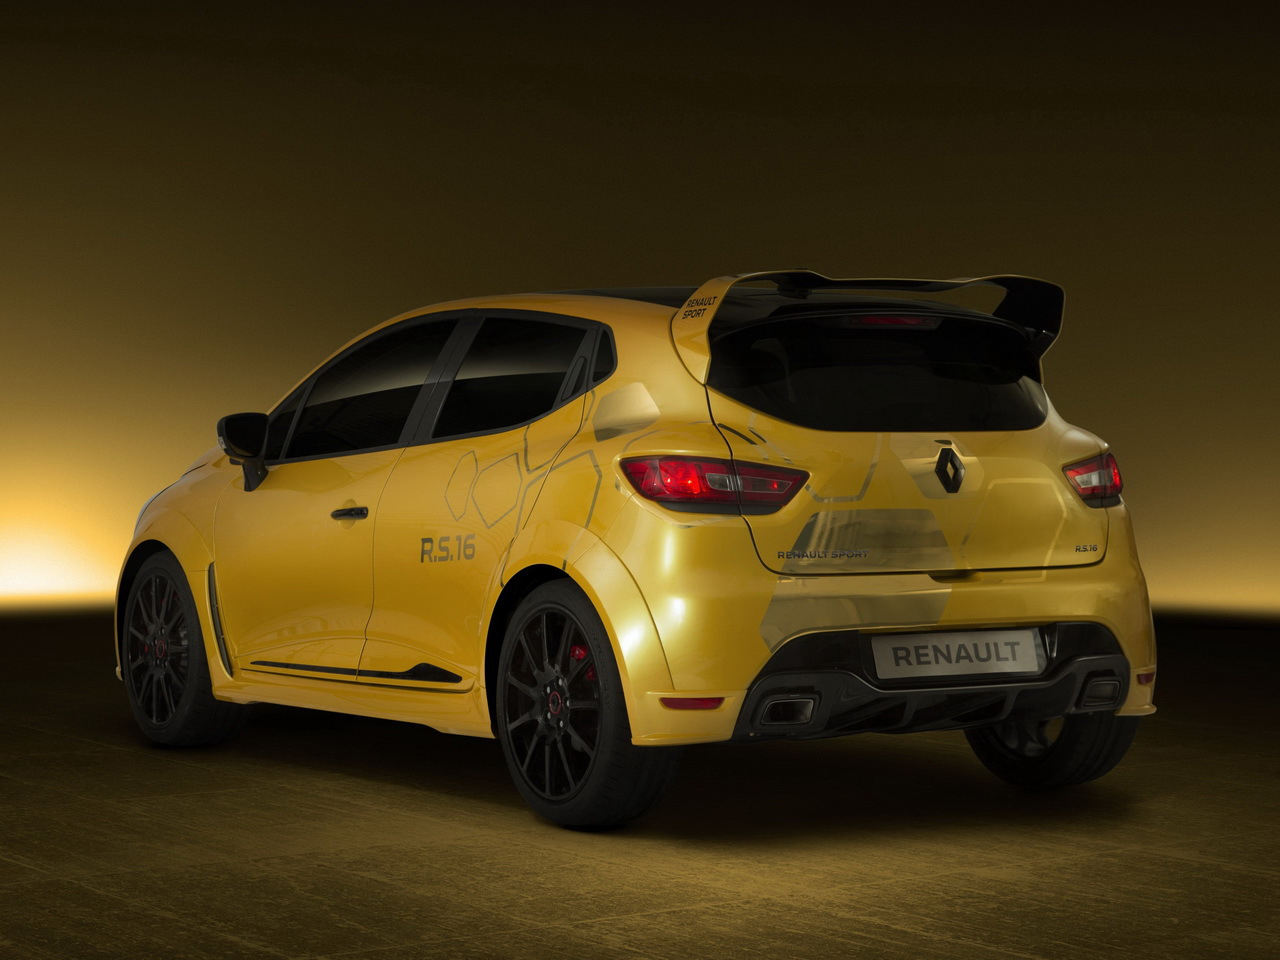 la nouvelle renault clio rs 16 embarque 275 chevaux blog. Black Bedroom Furniture Sets. Home Design Ideas